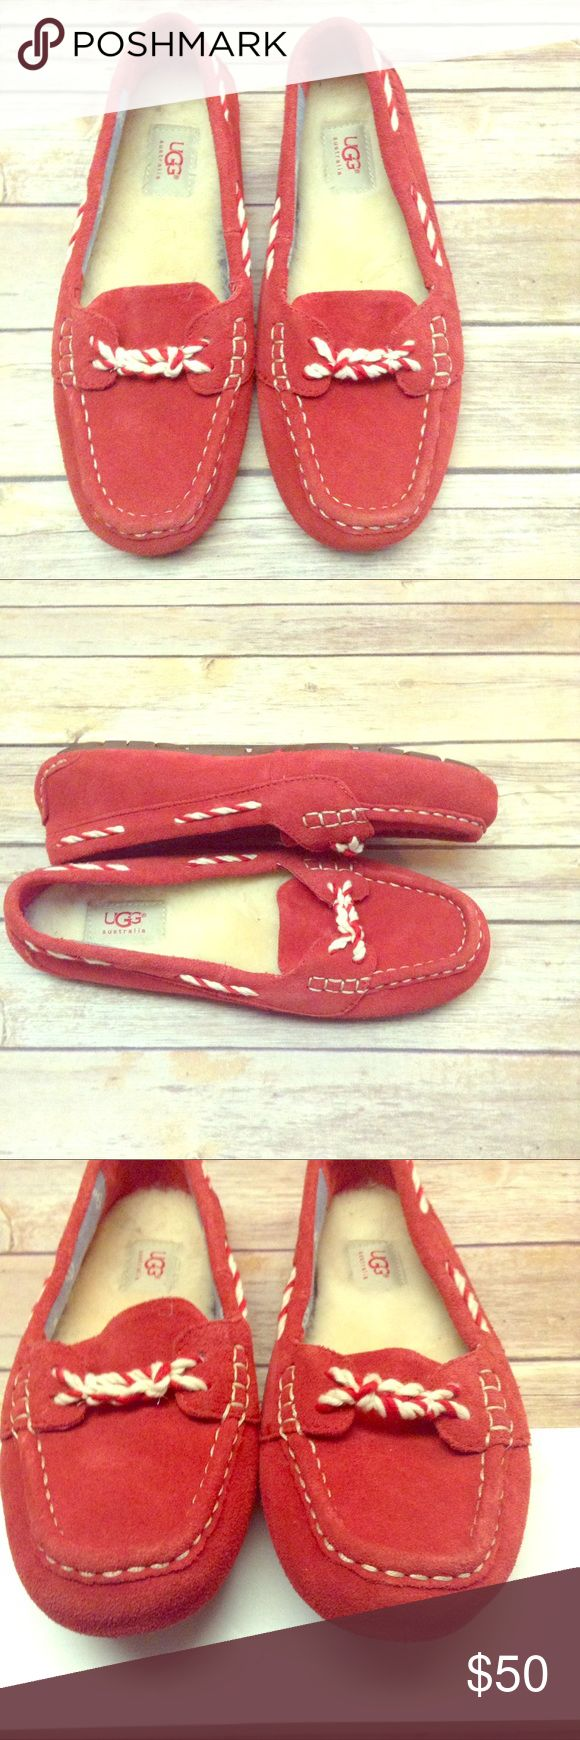 UGG Australia W Genoa moccasin Like new, red suede, fleece lined loafers. Uber cute and comfy!!!! UGG Australia Shoes Flats & Loafers